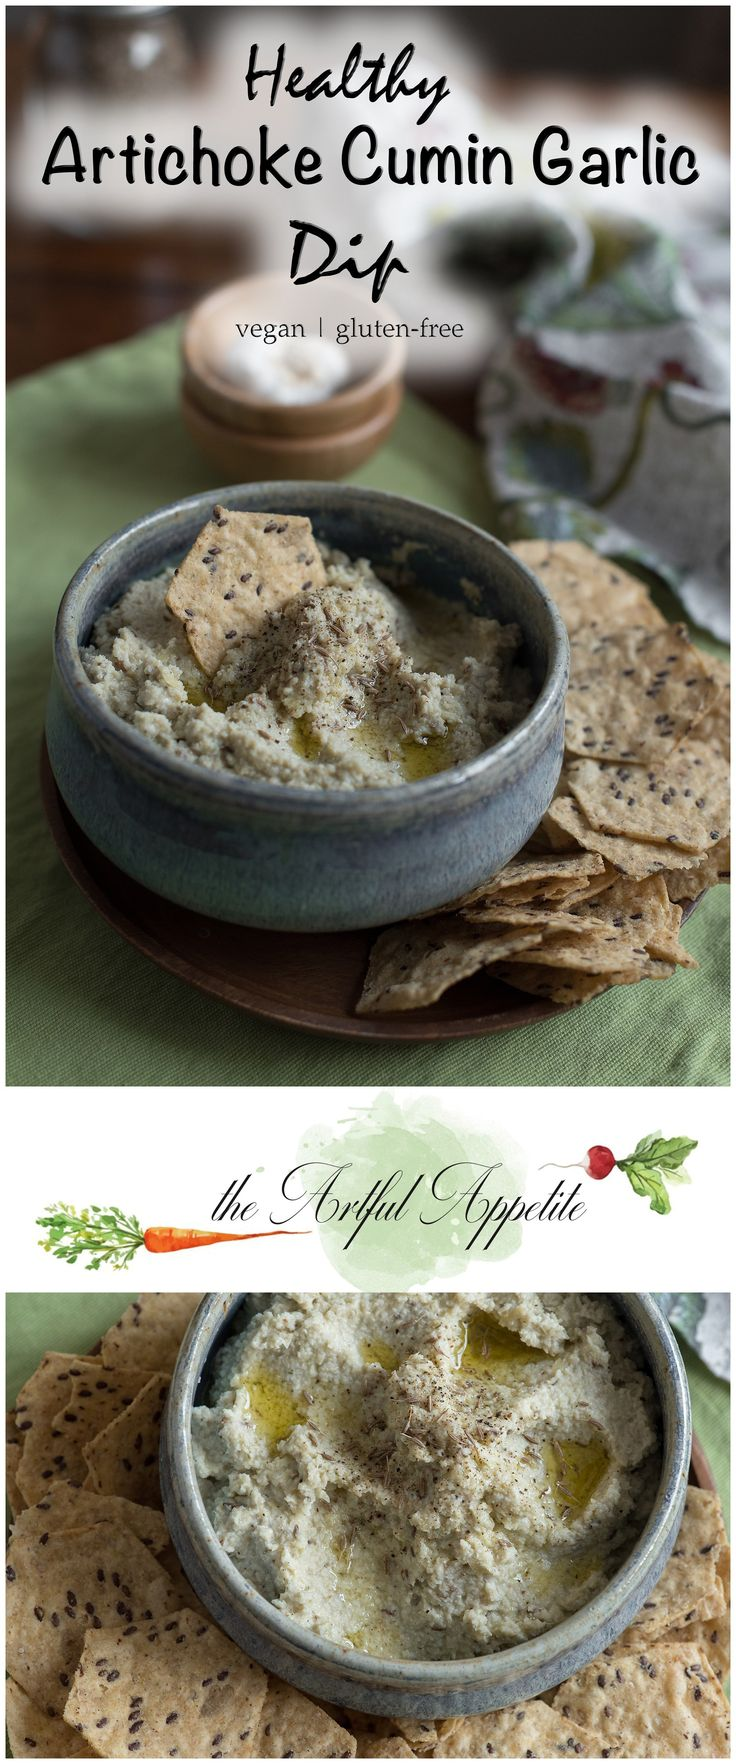 A simple dip perfect for game day! Healthy Artichoke Cumin Garlic Dip is vegan, gluten-free and delicious.